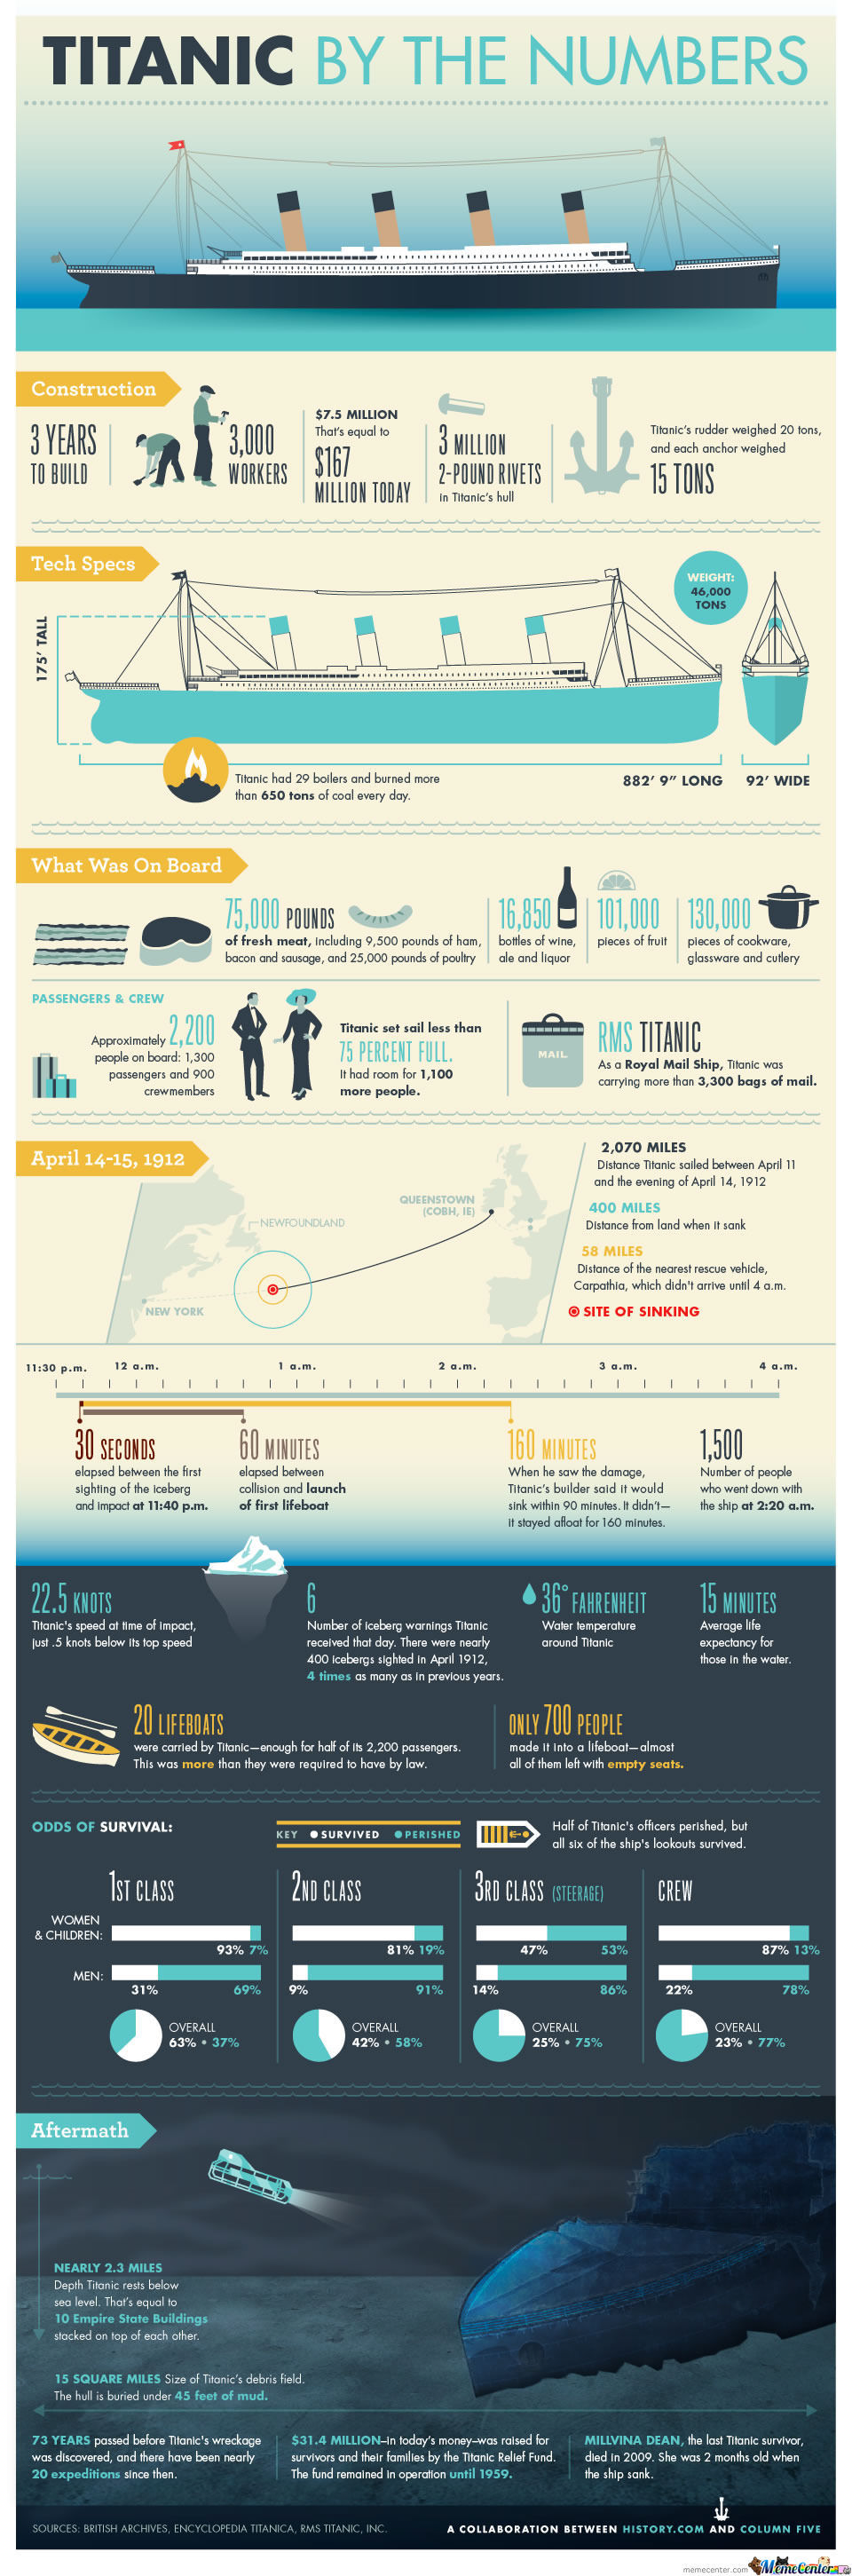 Titanic In Numbers